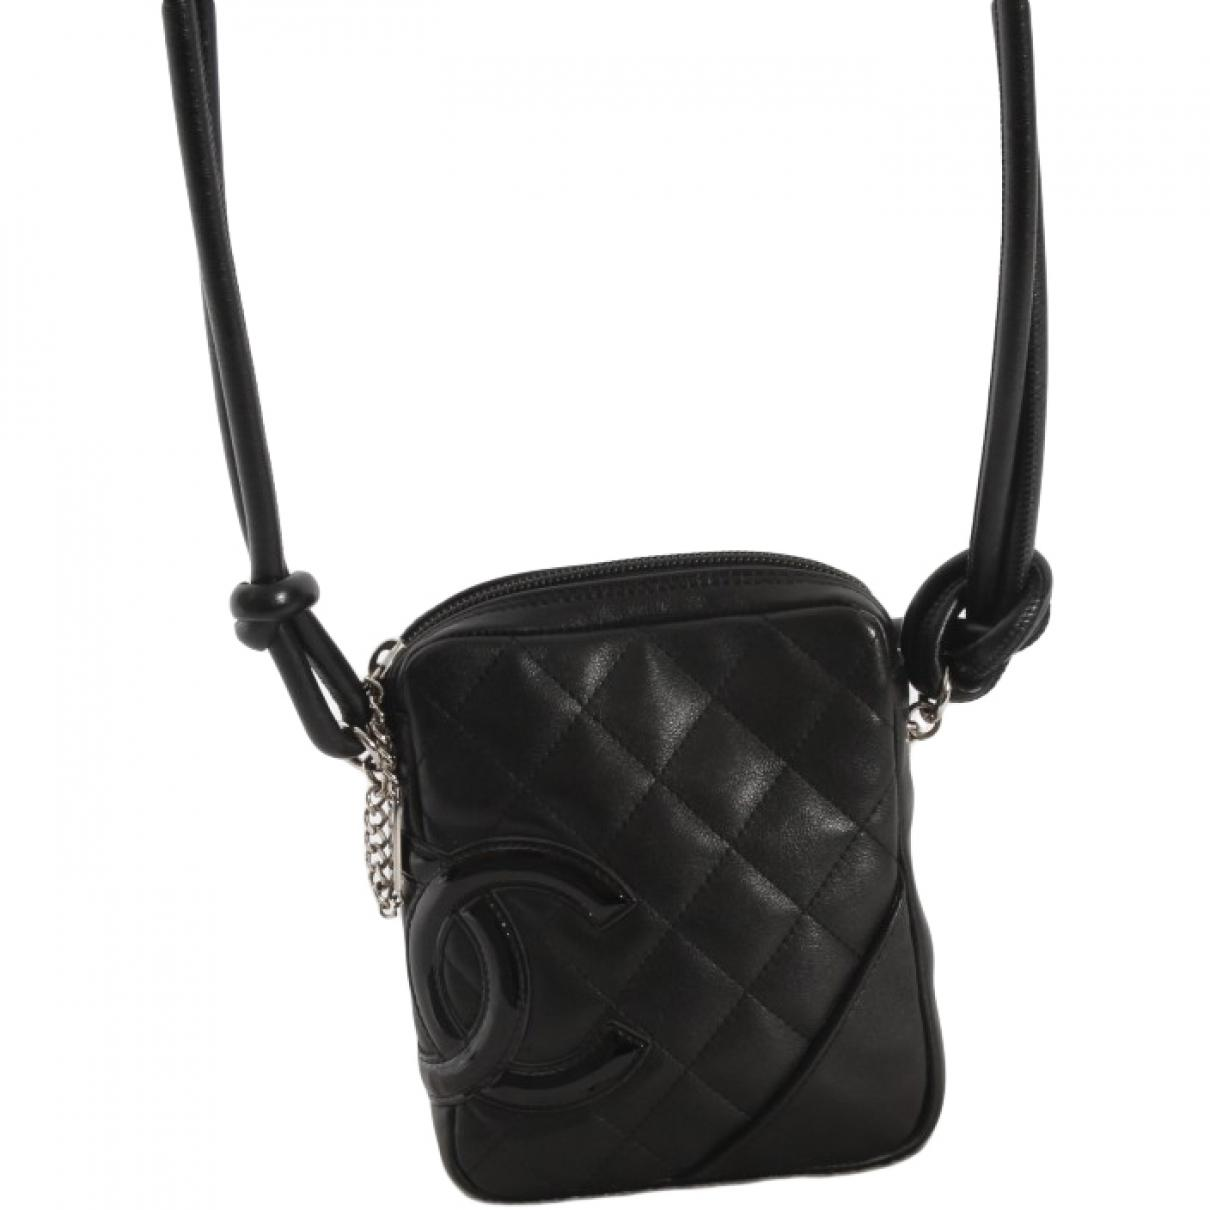 89cb90b703ea Chanel Pre-owned Cambon Crossbody Bag in Black - Lyst